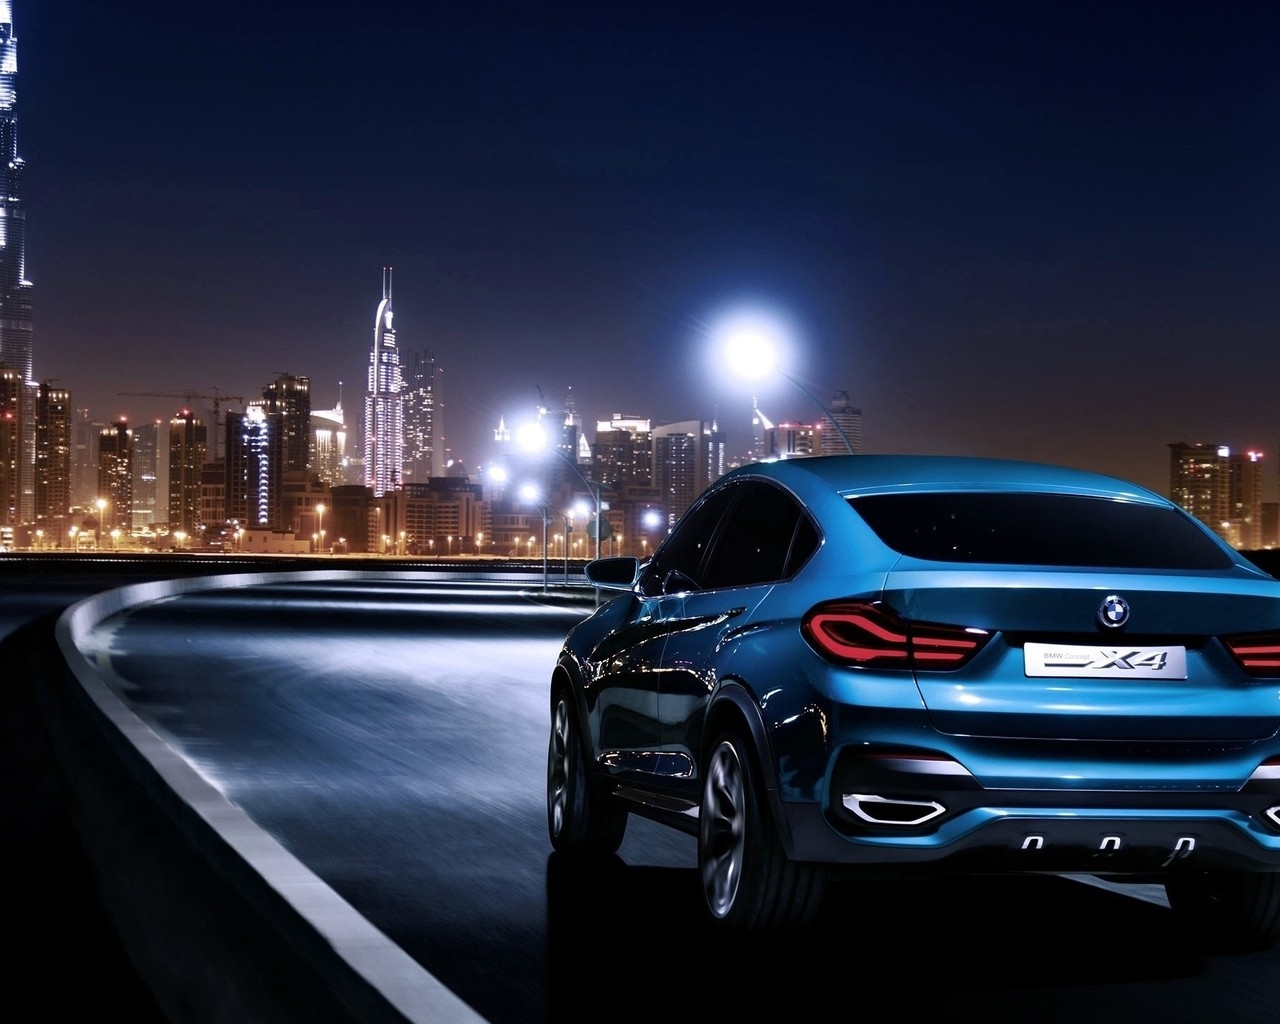 Blue BMW X4 Rear for 1280 x 1024 resolution